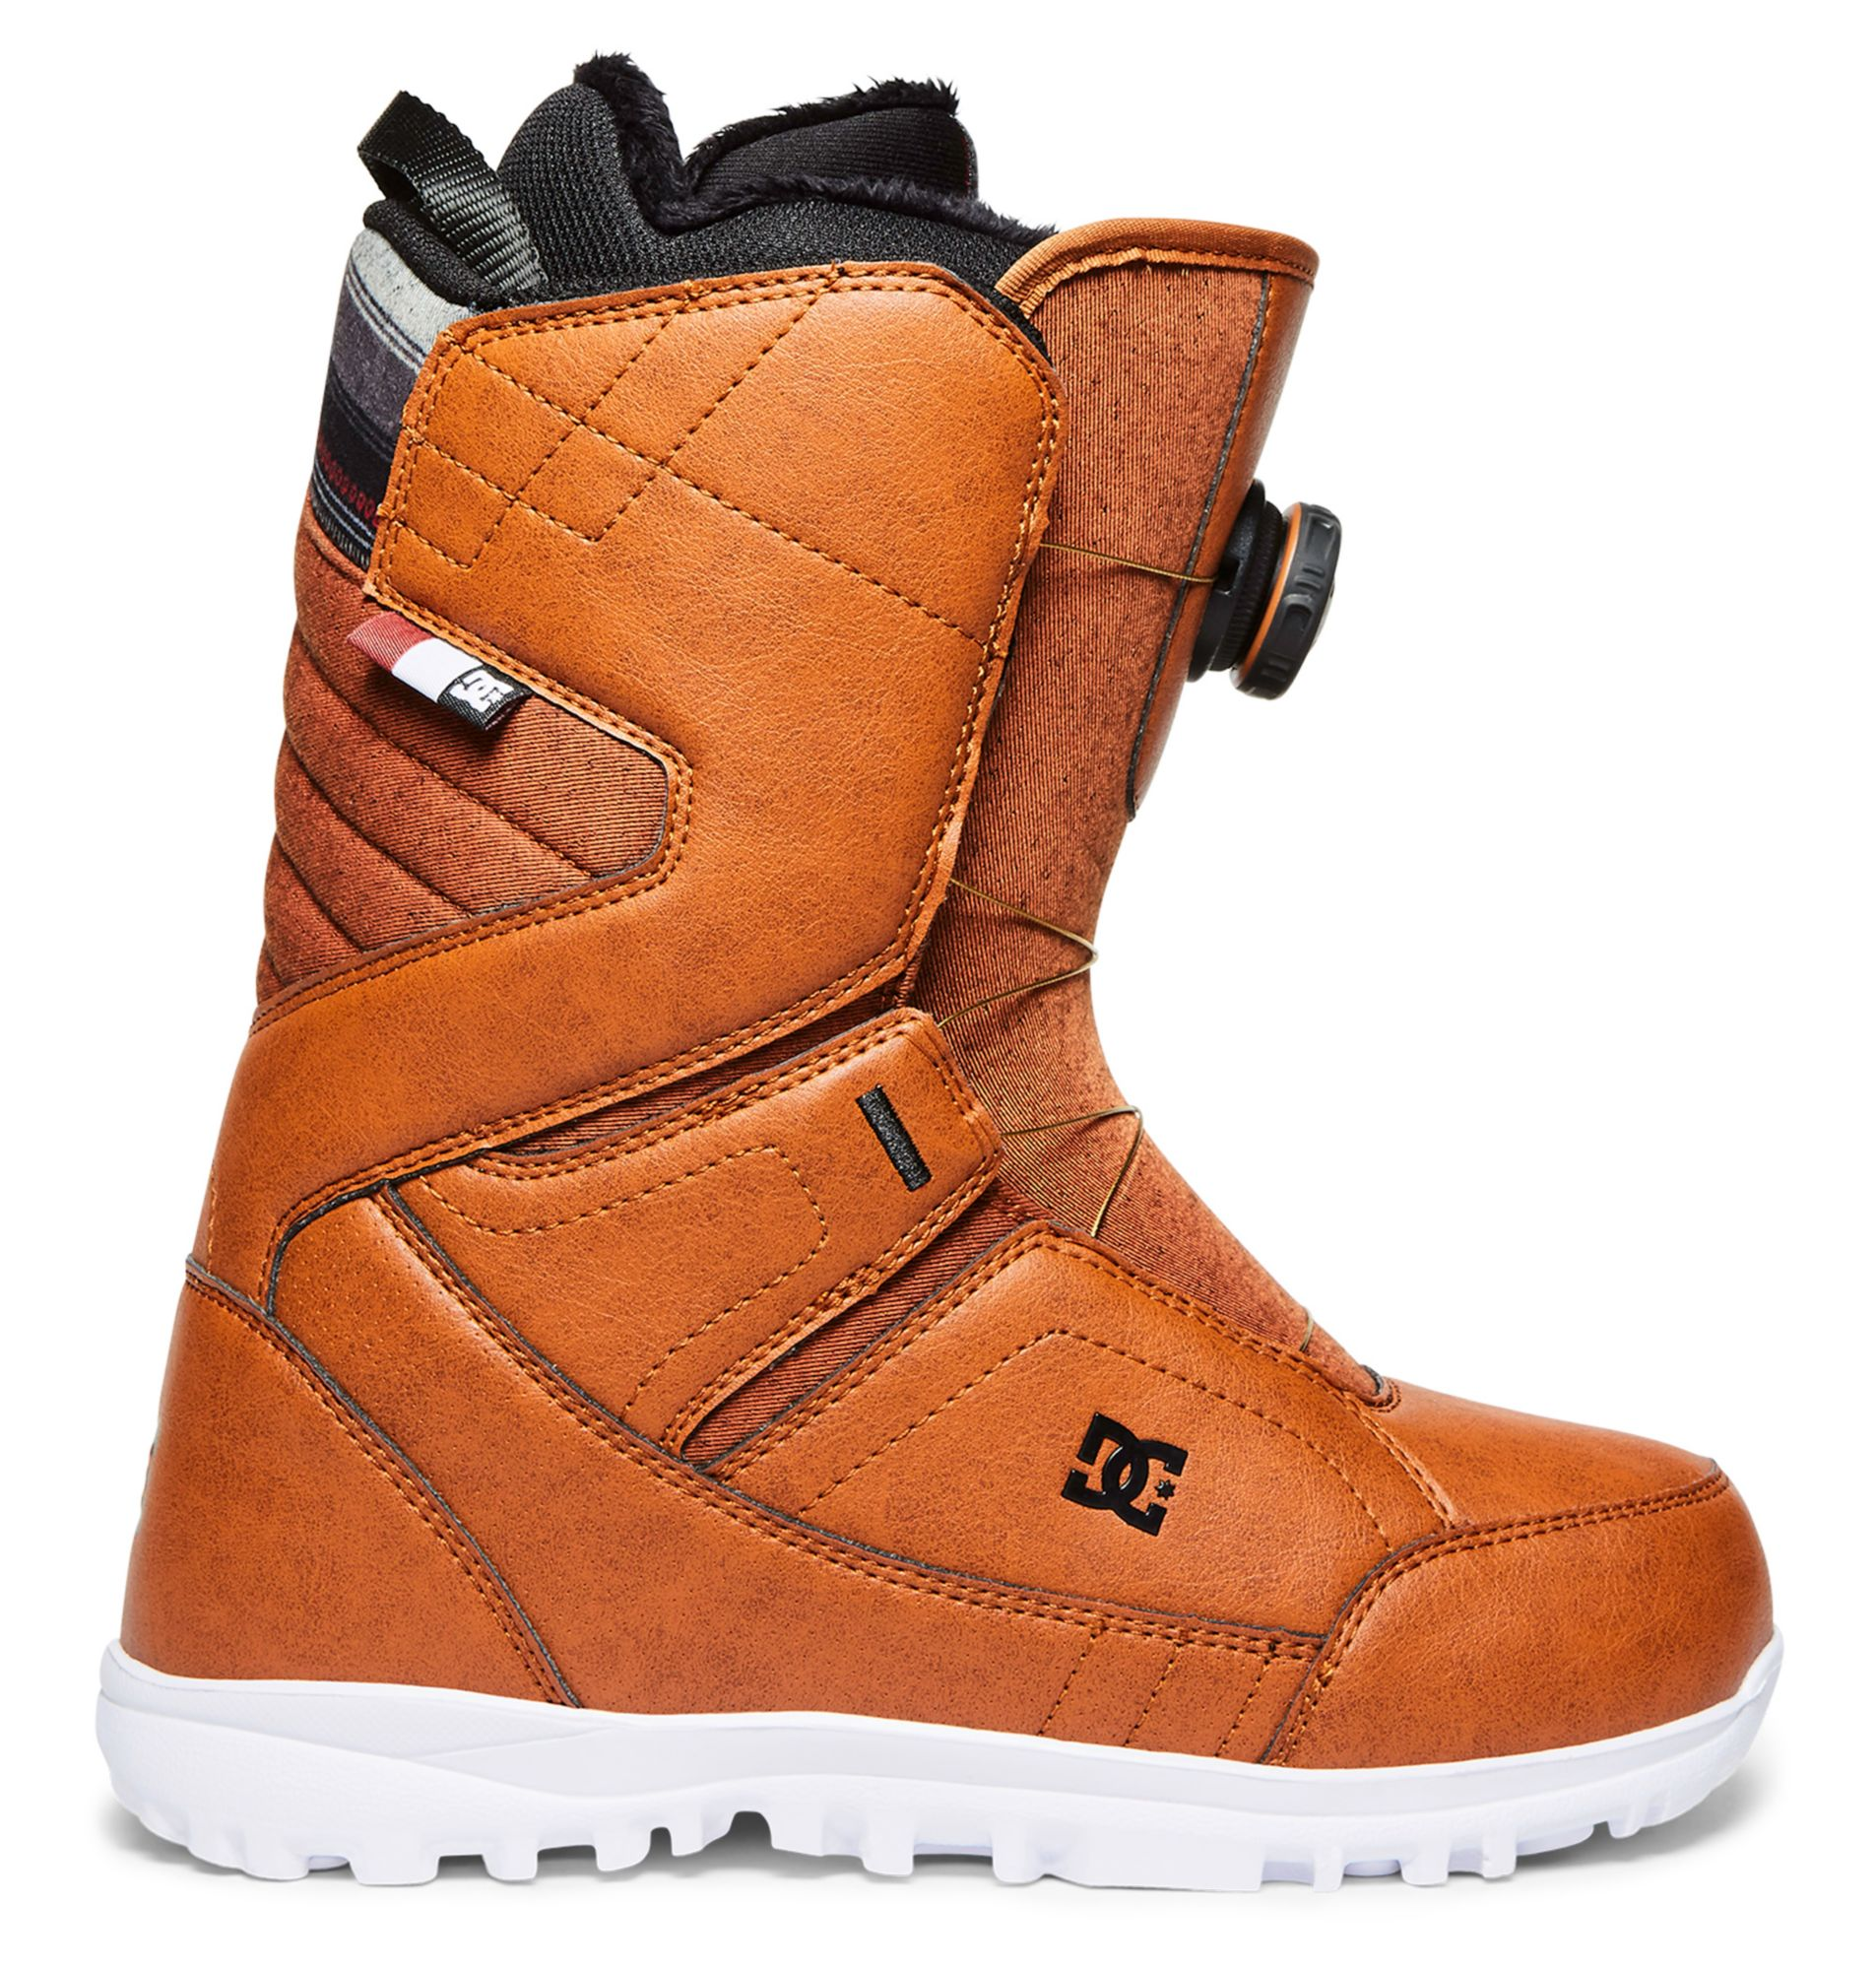 DC SHOES DC Shoes BOA Snowboard-Boots »Search«